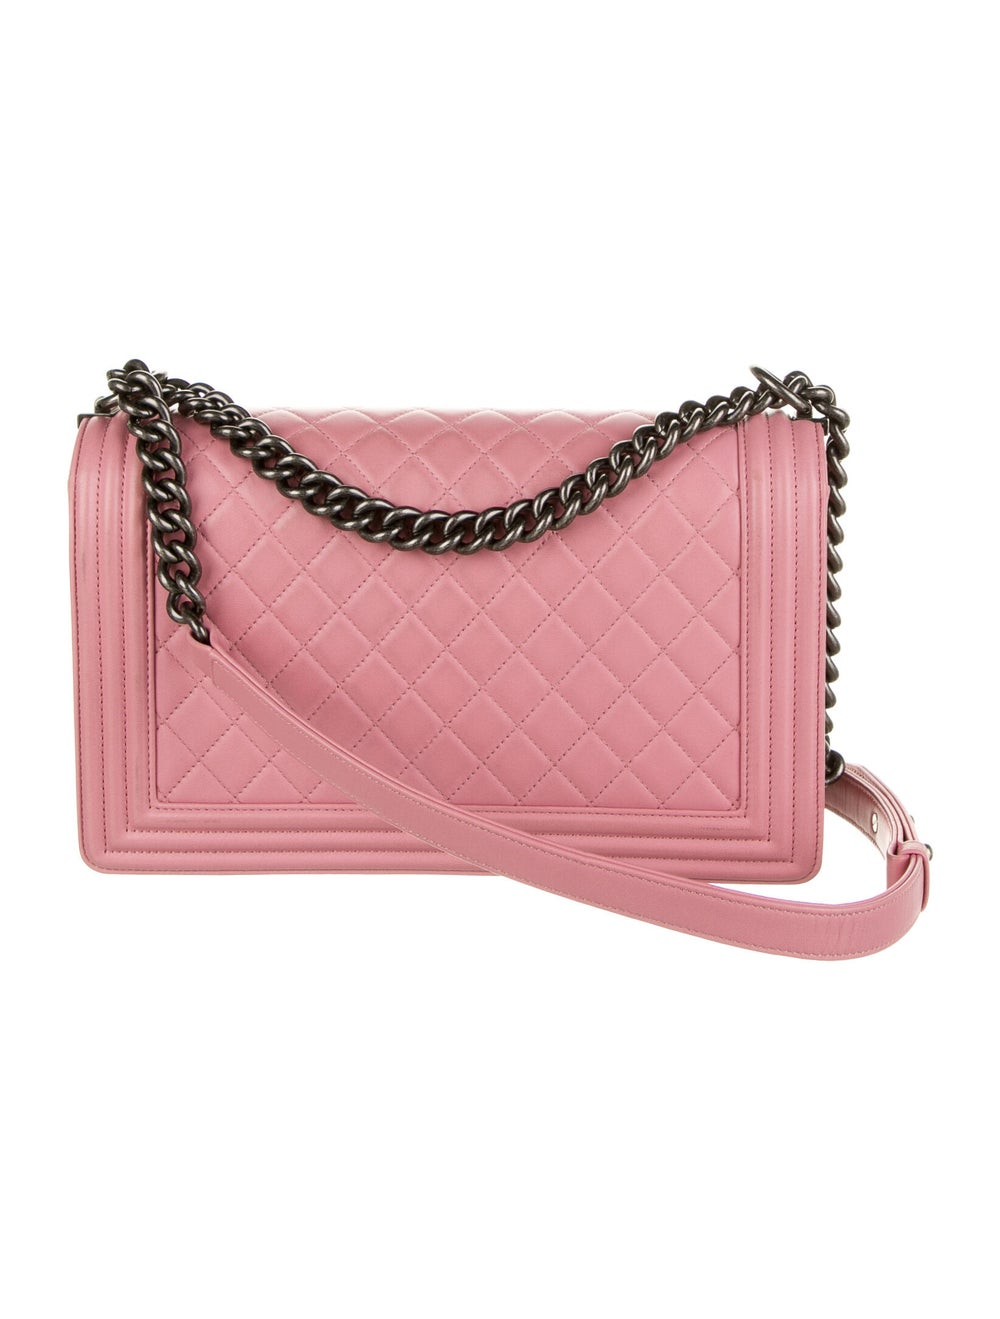 Chanel Large Quilted Boy Bag Pink - image 4